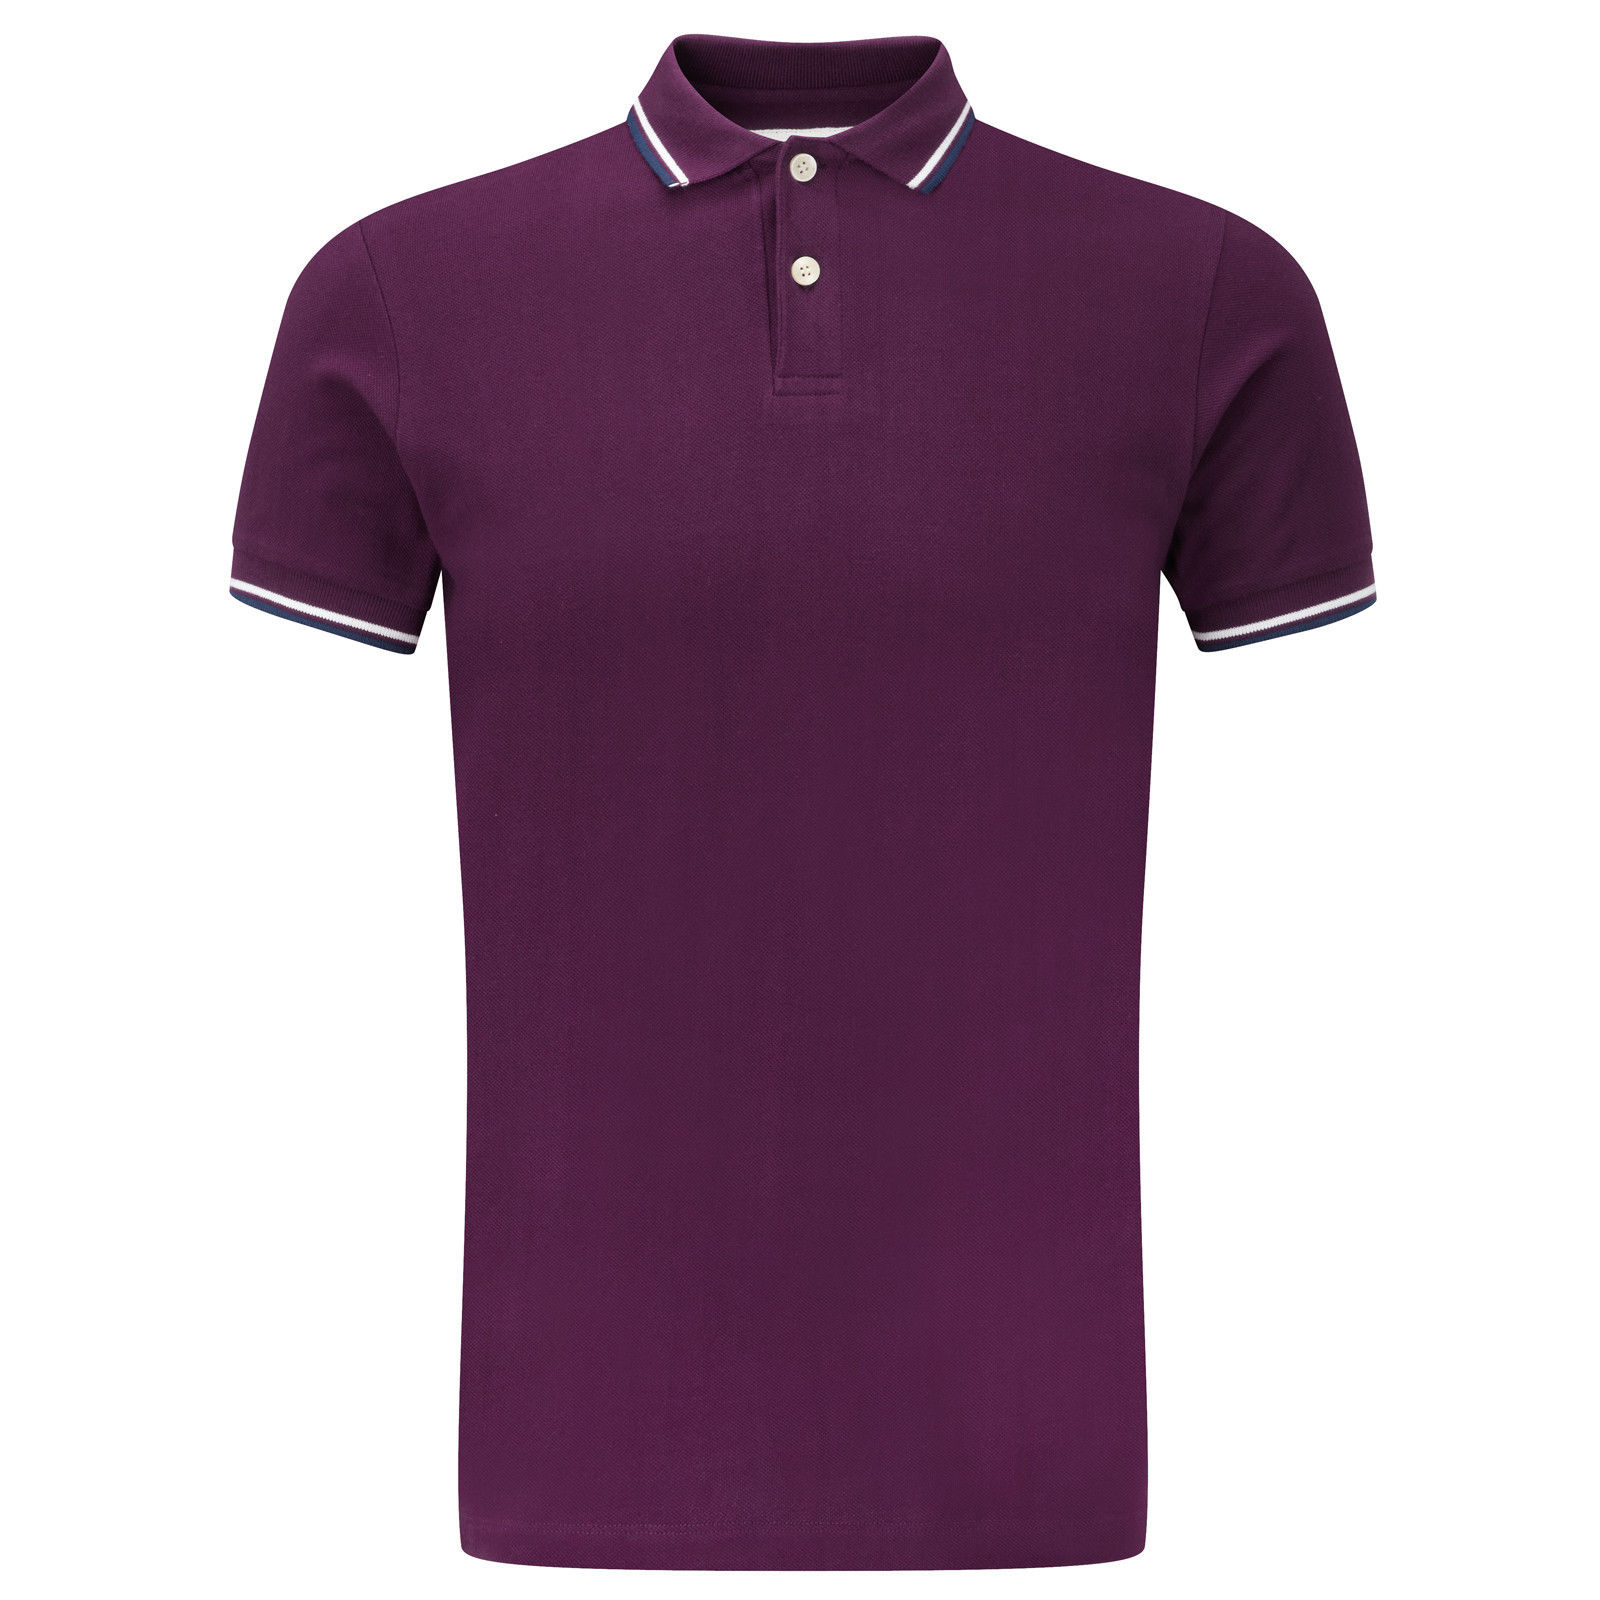 where is the best place to buy polo shirts